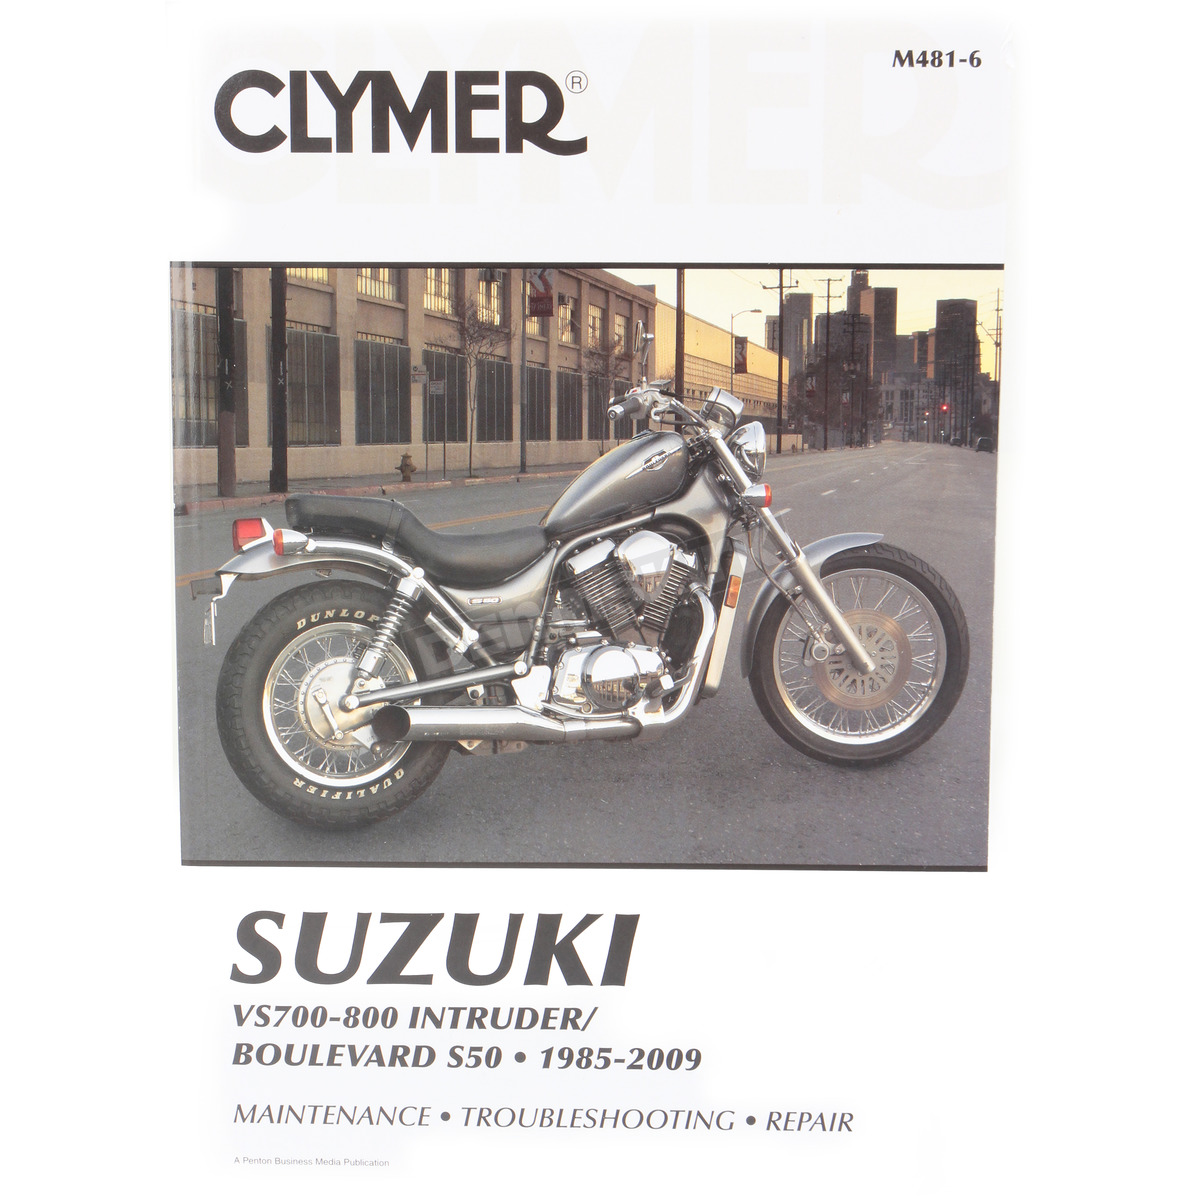 Clymer manual motorcycle